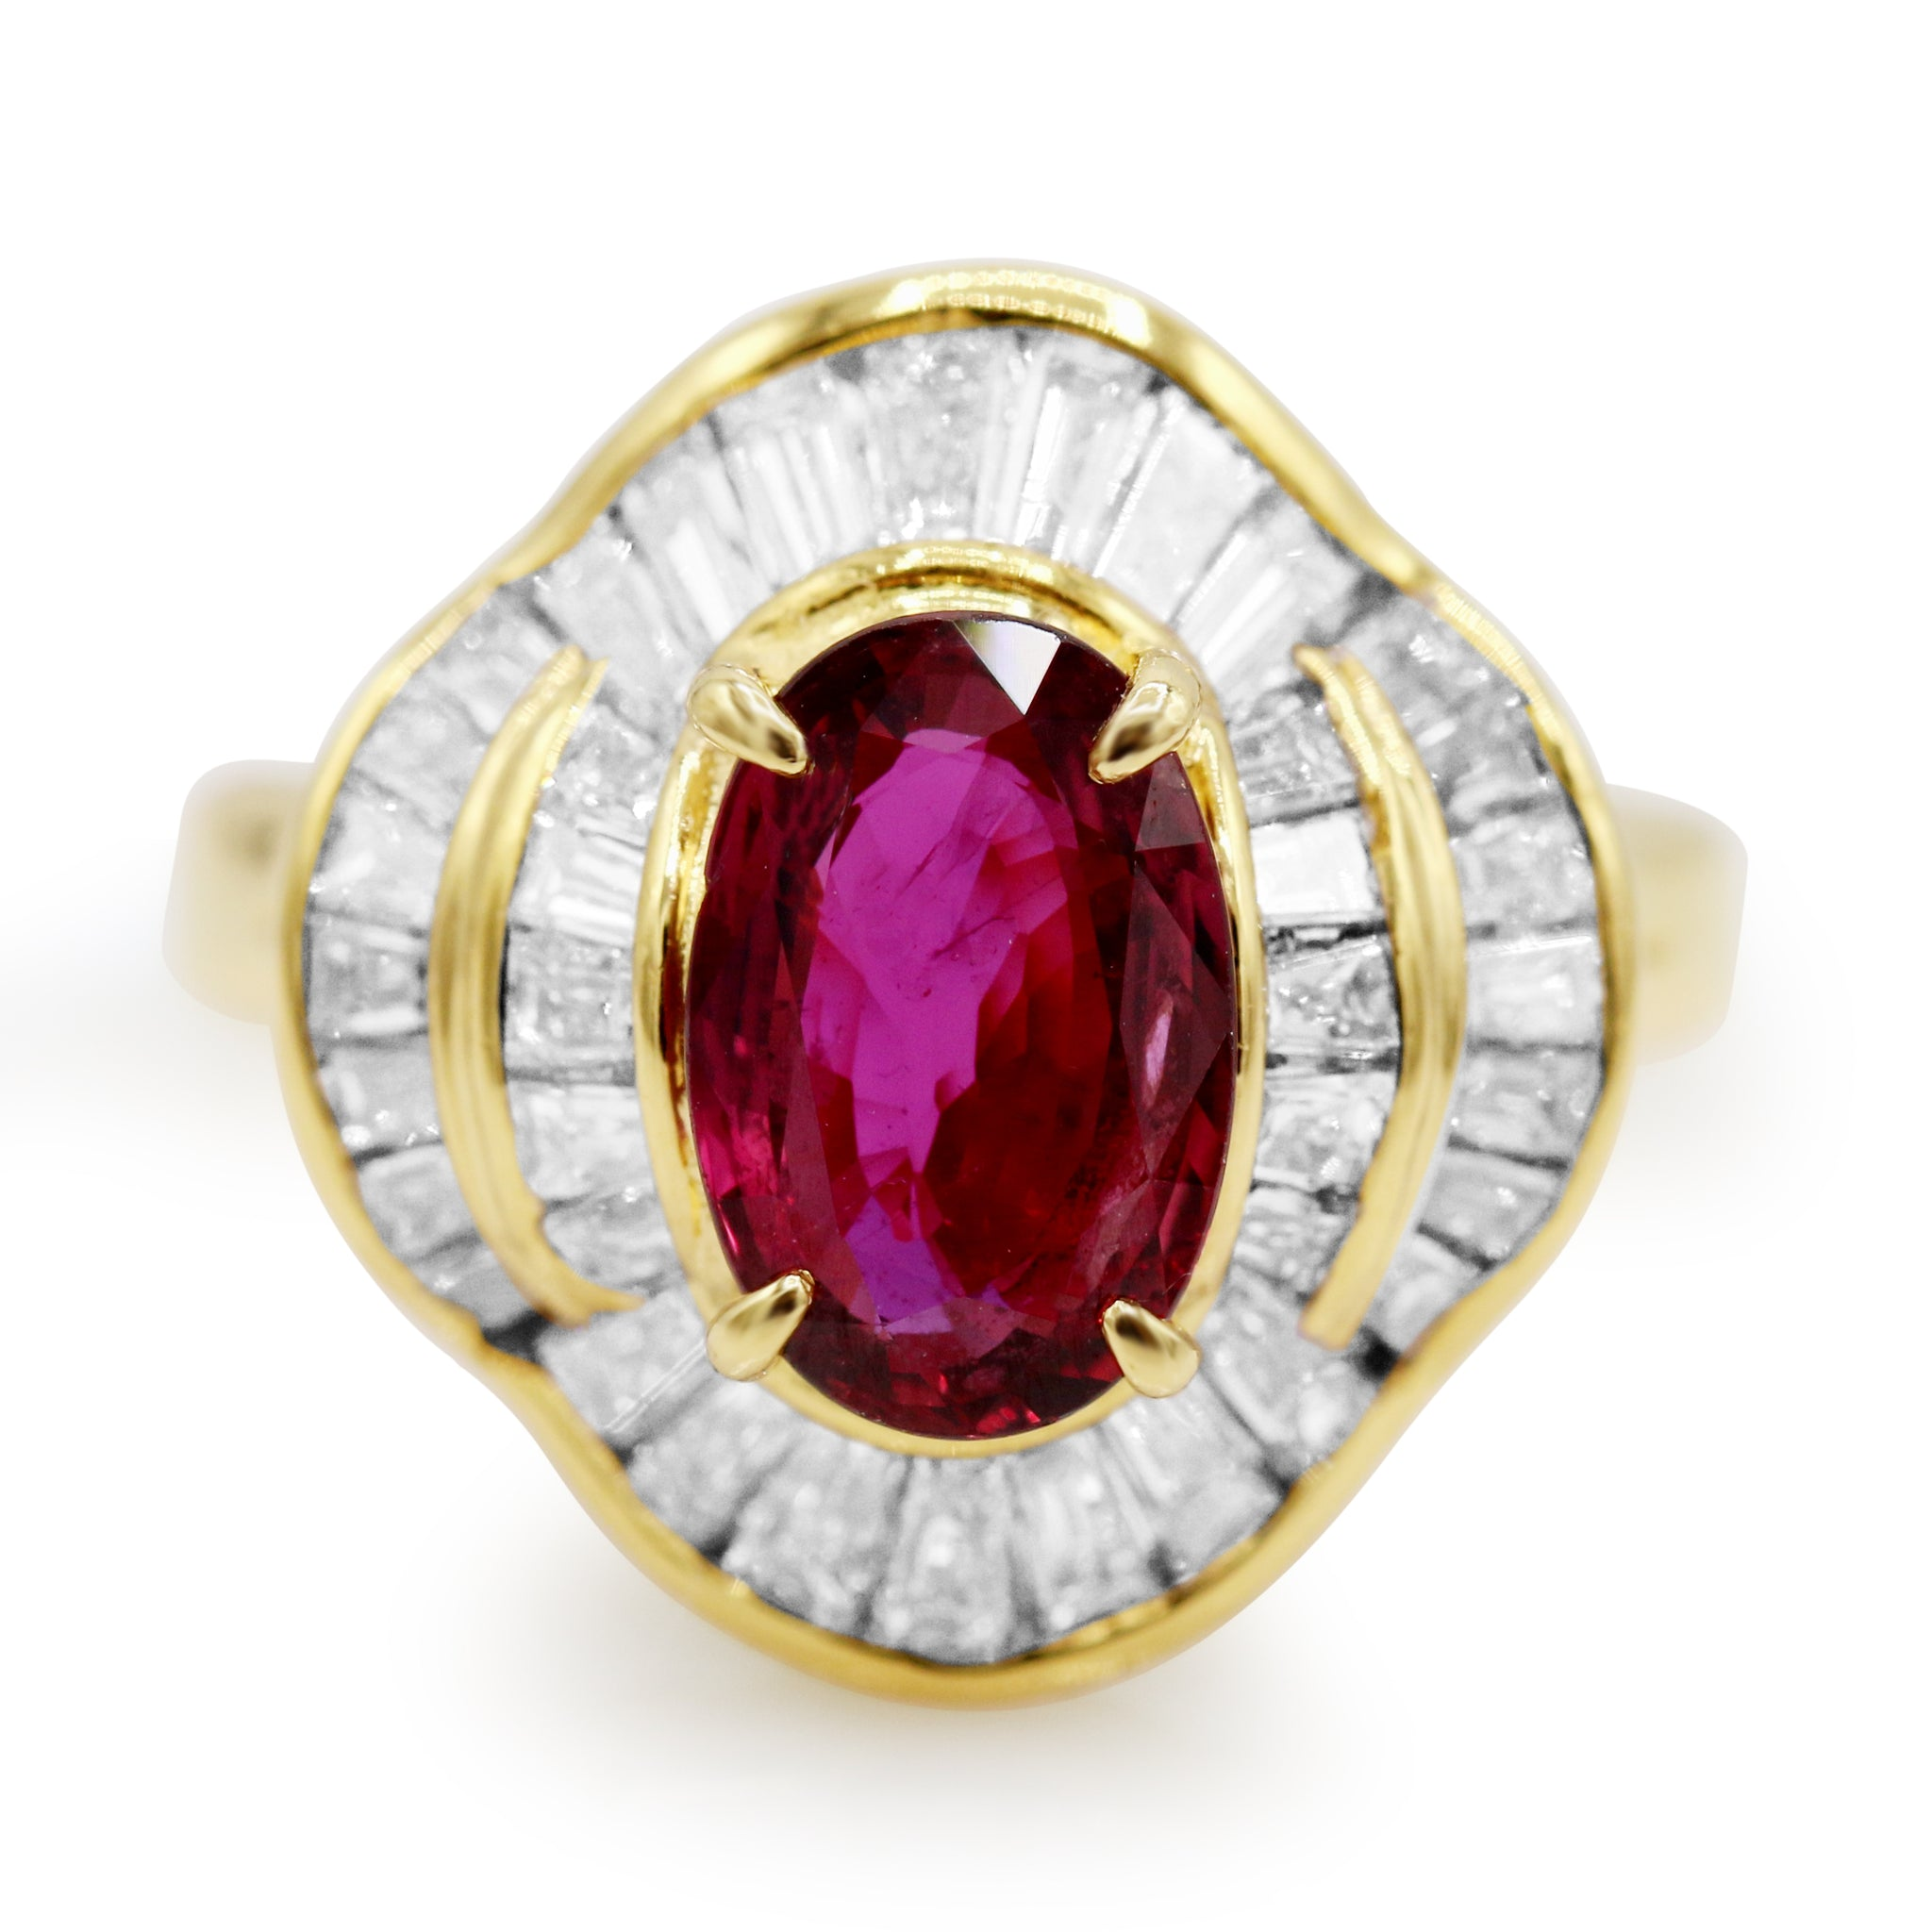 Flawless 18K Yellow Gold Ruby Diamond Ring